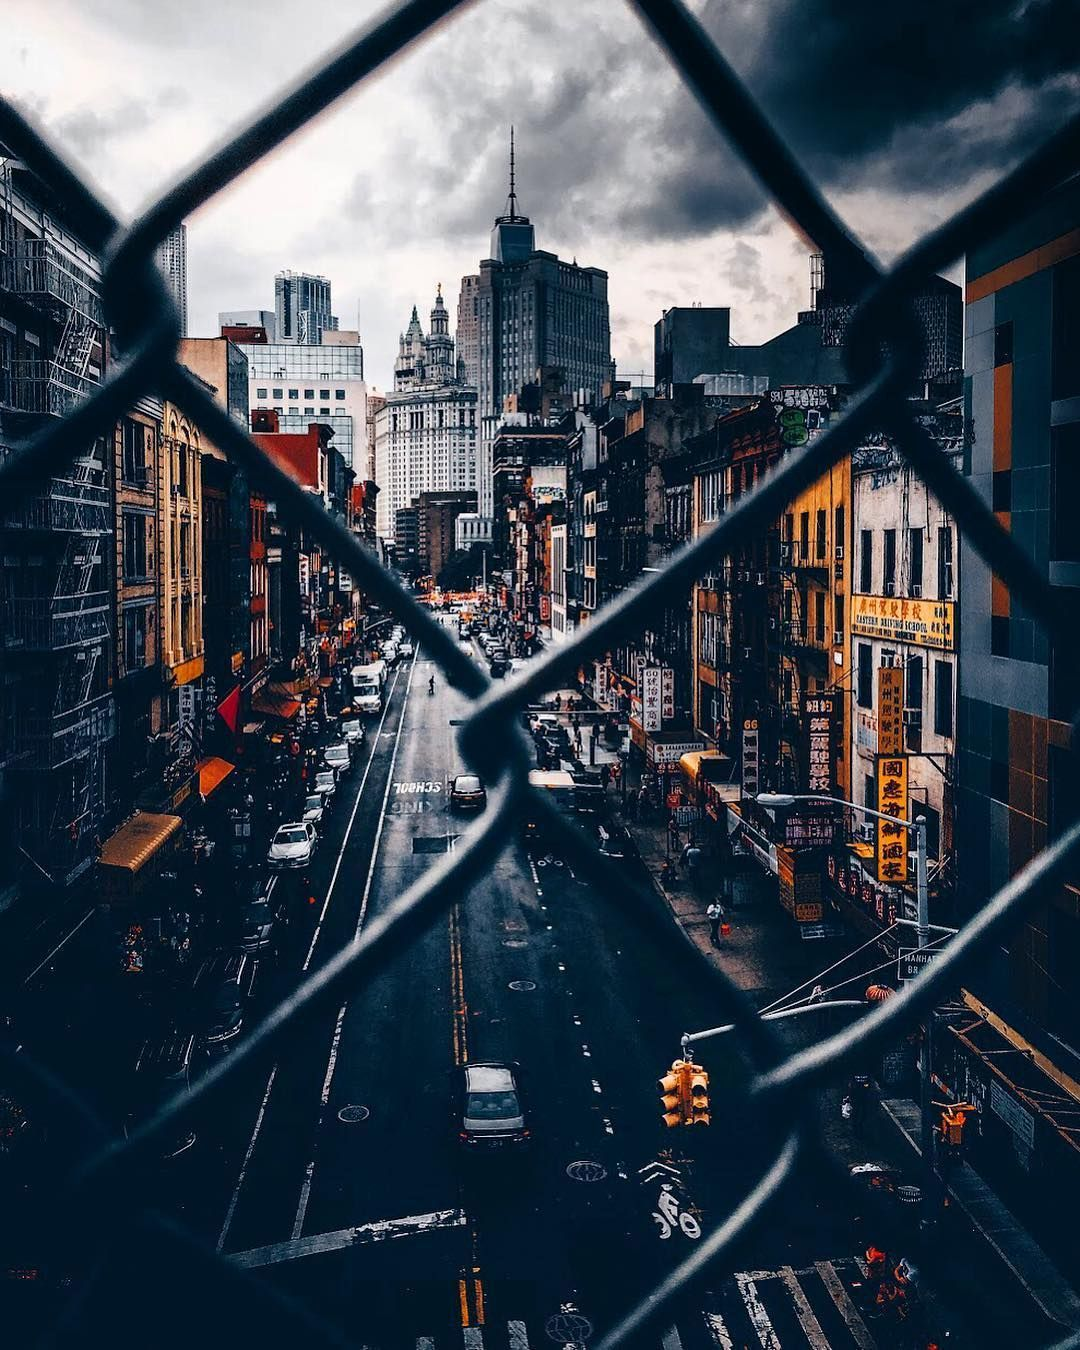 From New York City: Stunning Urban Instagrams Of New York City By Mike